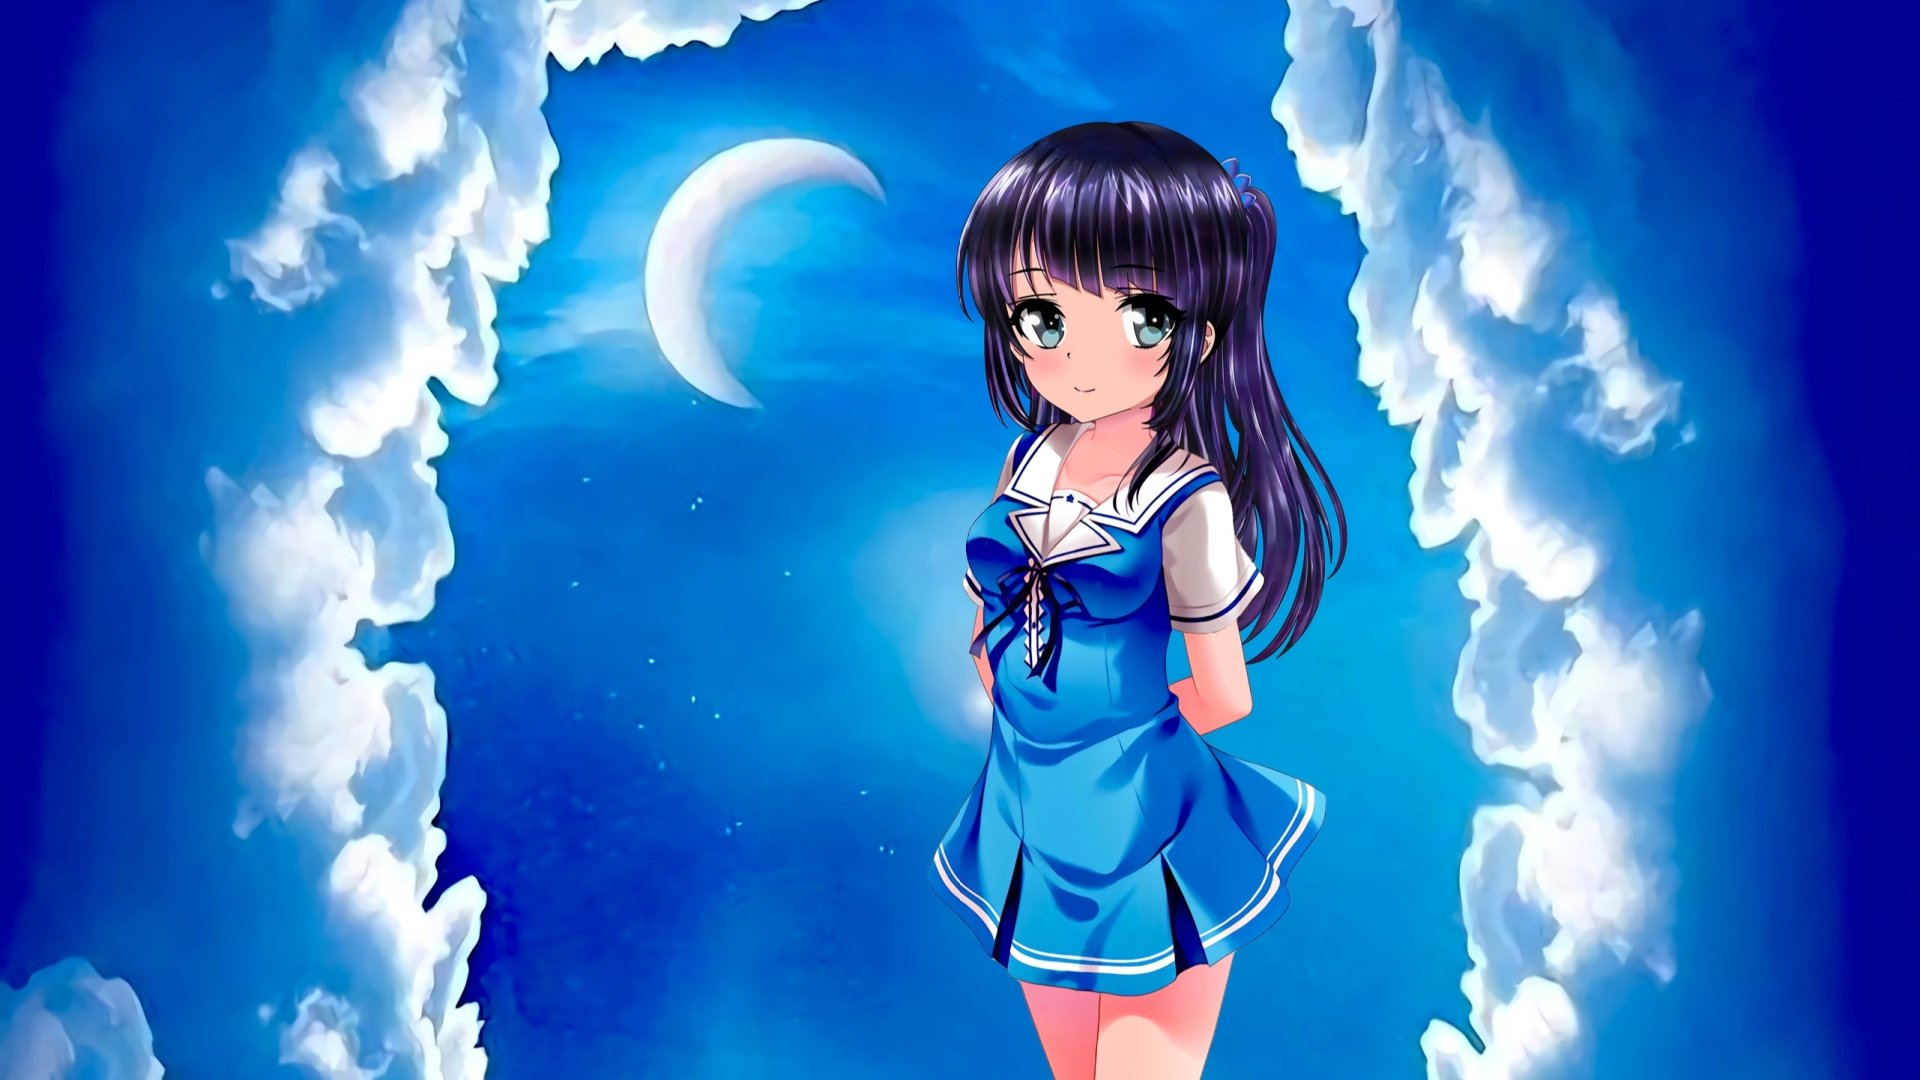 Wallpapers ID:1060612